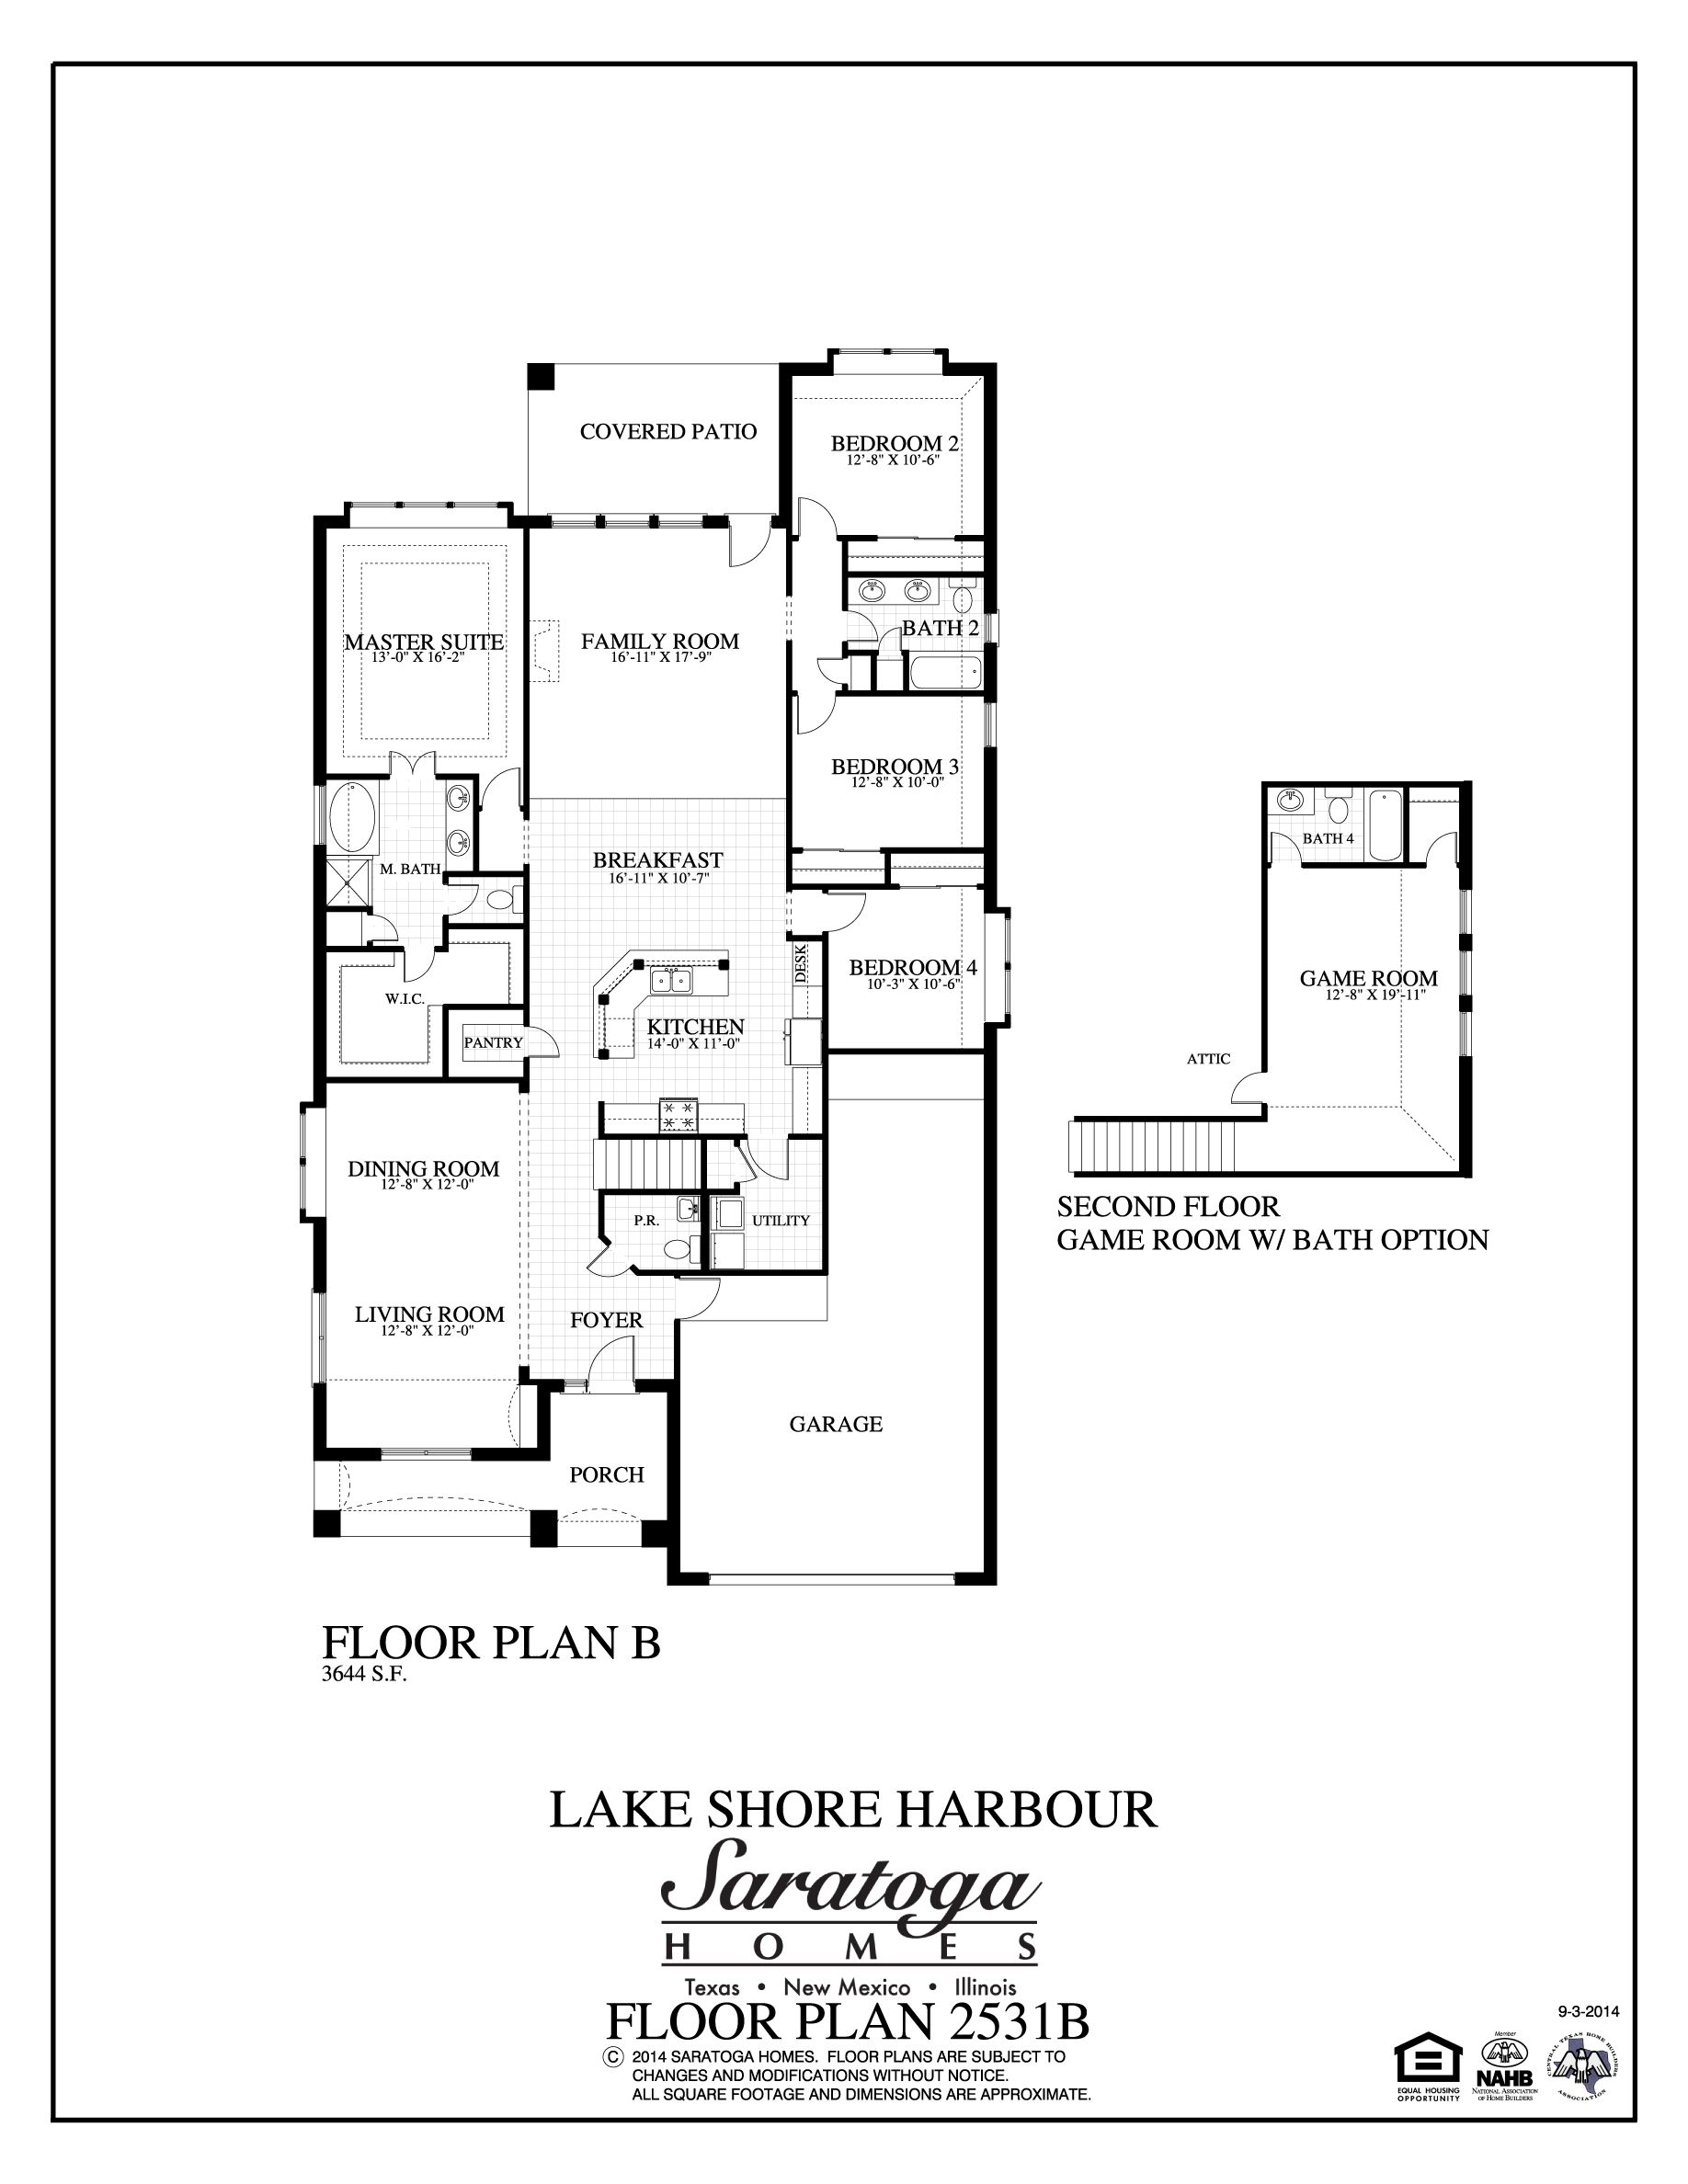 Lovely Saratoga Homes Floor Plans #5: 3734 Varna Court (2531), Sienna Plantation, Texas 77459 - 2531 Plan At Lake  Shore Harbour By Saratoga Homes